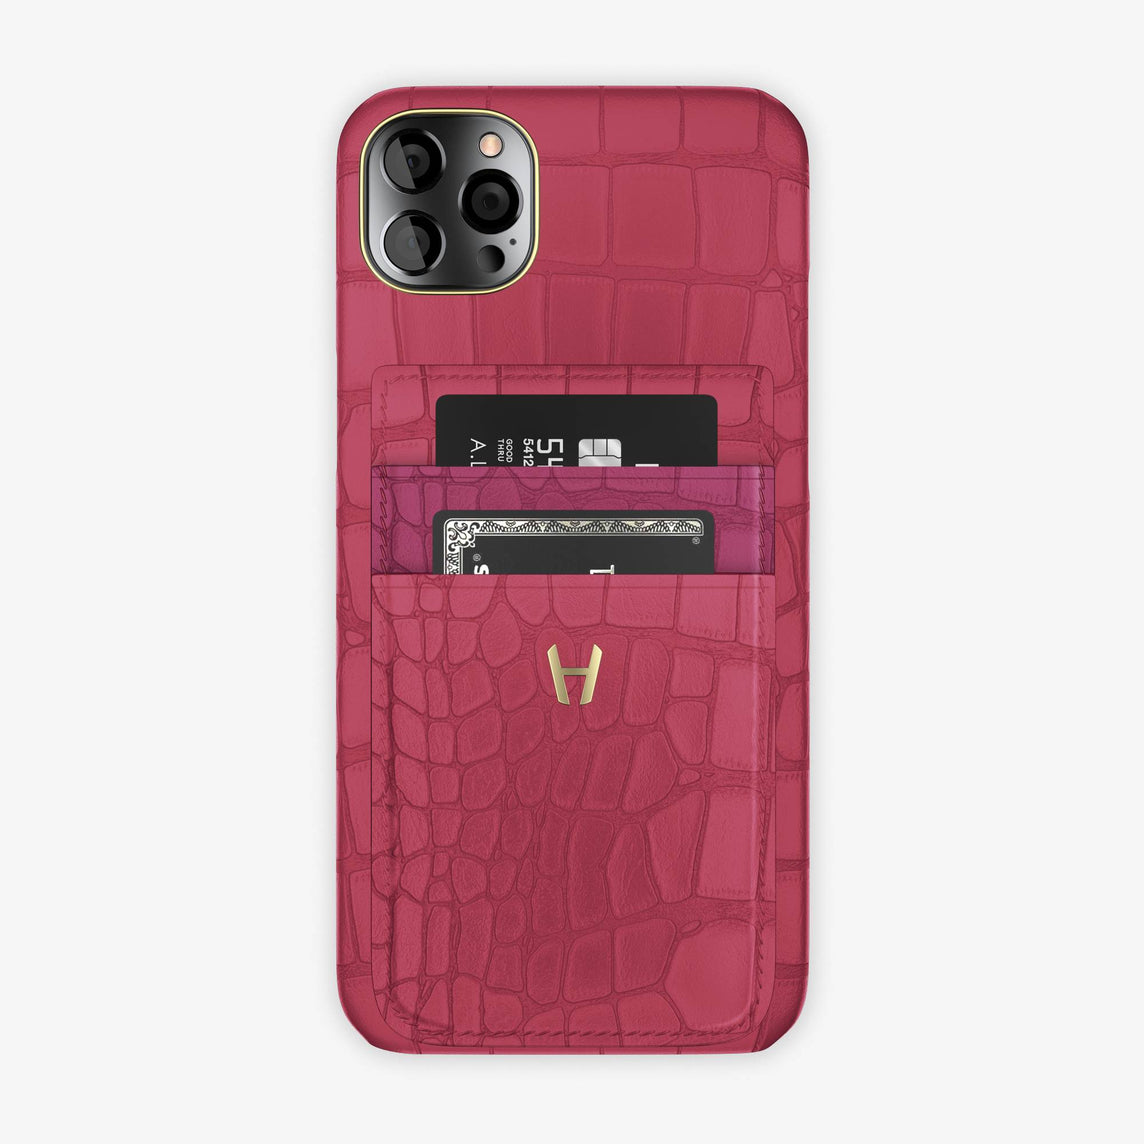 Alligator Pocket Case iPhone 12 Pro Max | Pink Girly/Pink Fuchsia - Yellow Gold